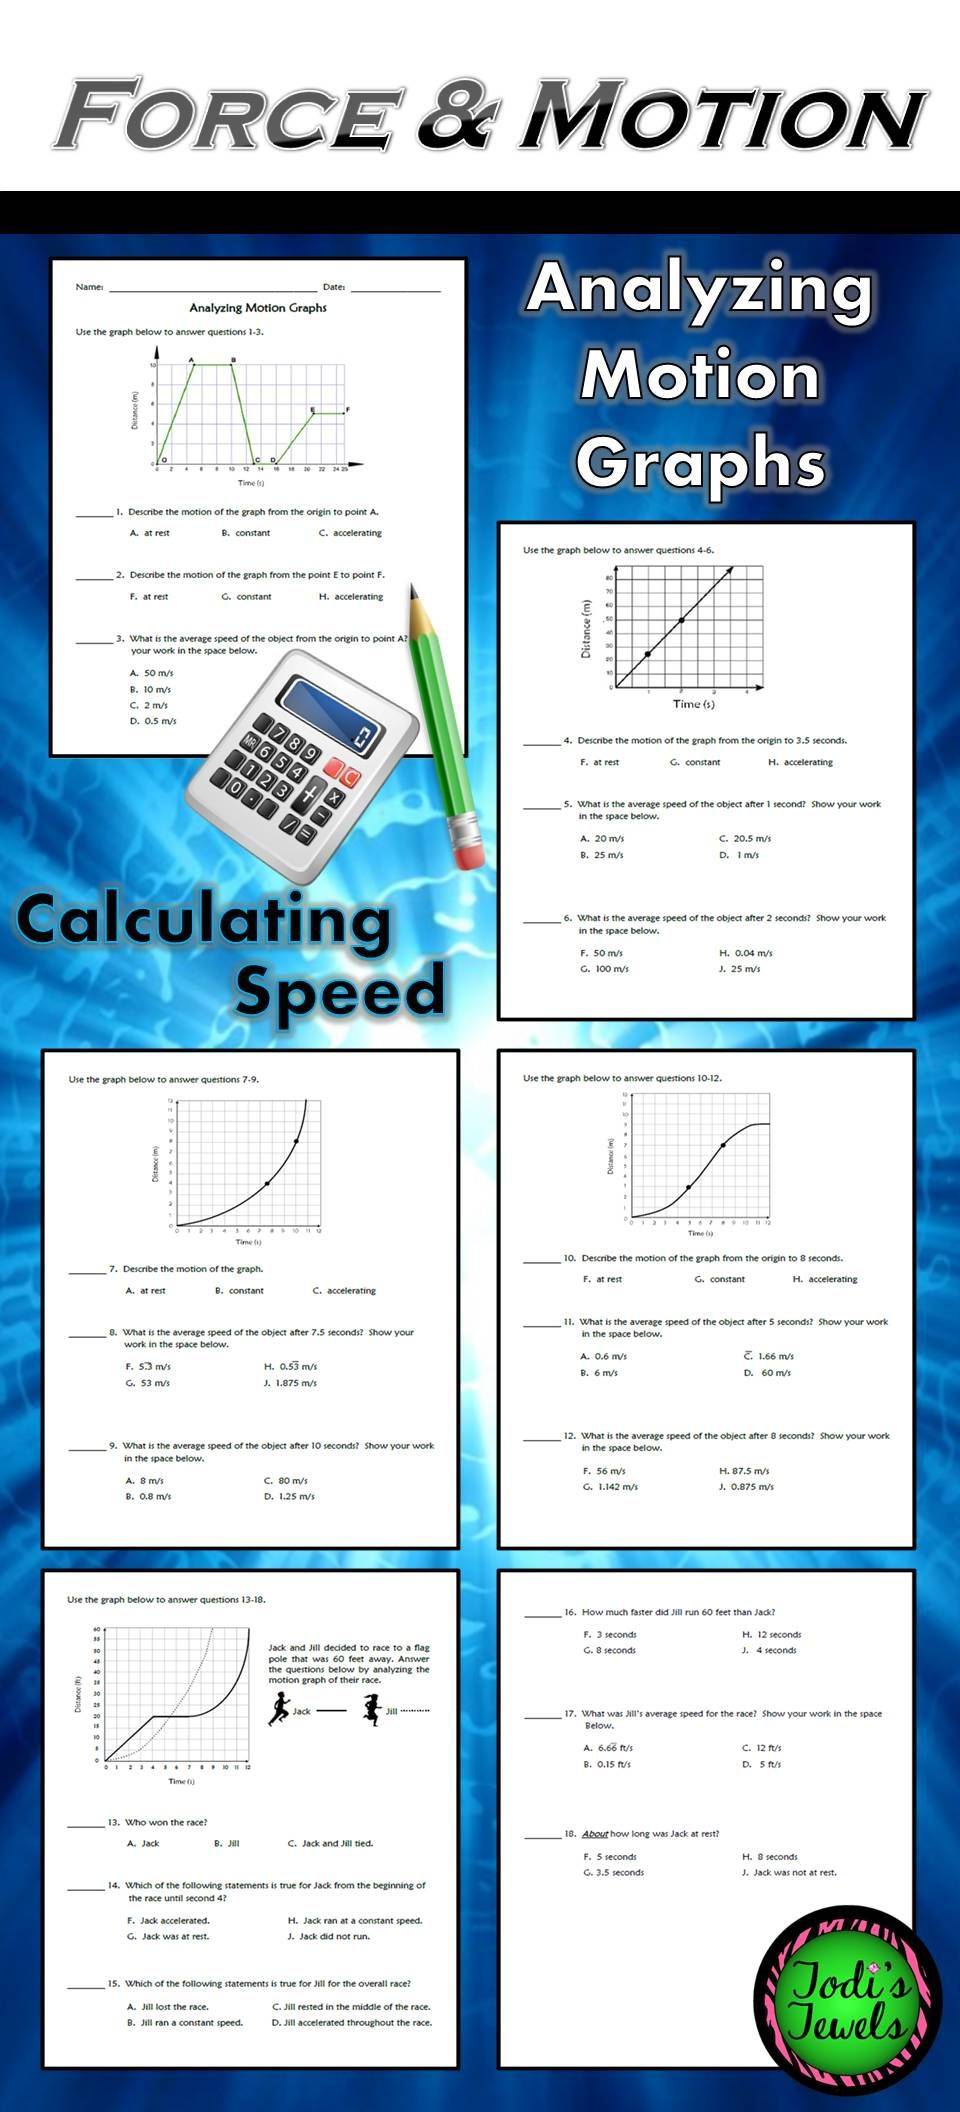 Worksheets Interpreting Motion Graphs Worksheet analyzing motion graphs calculating speed ws teaching science this worksheet is a great addition to your force unit for beginners students will analyze basic constant